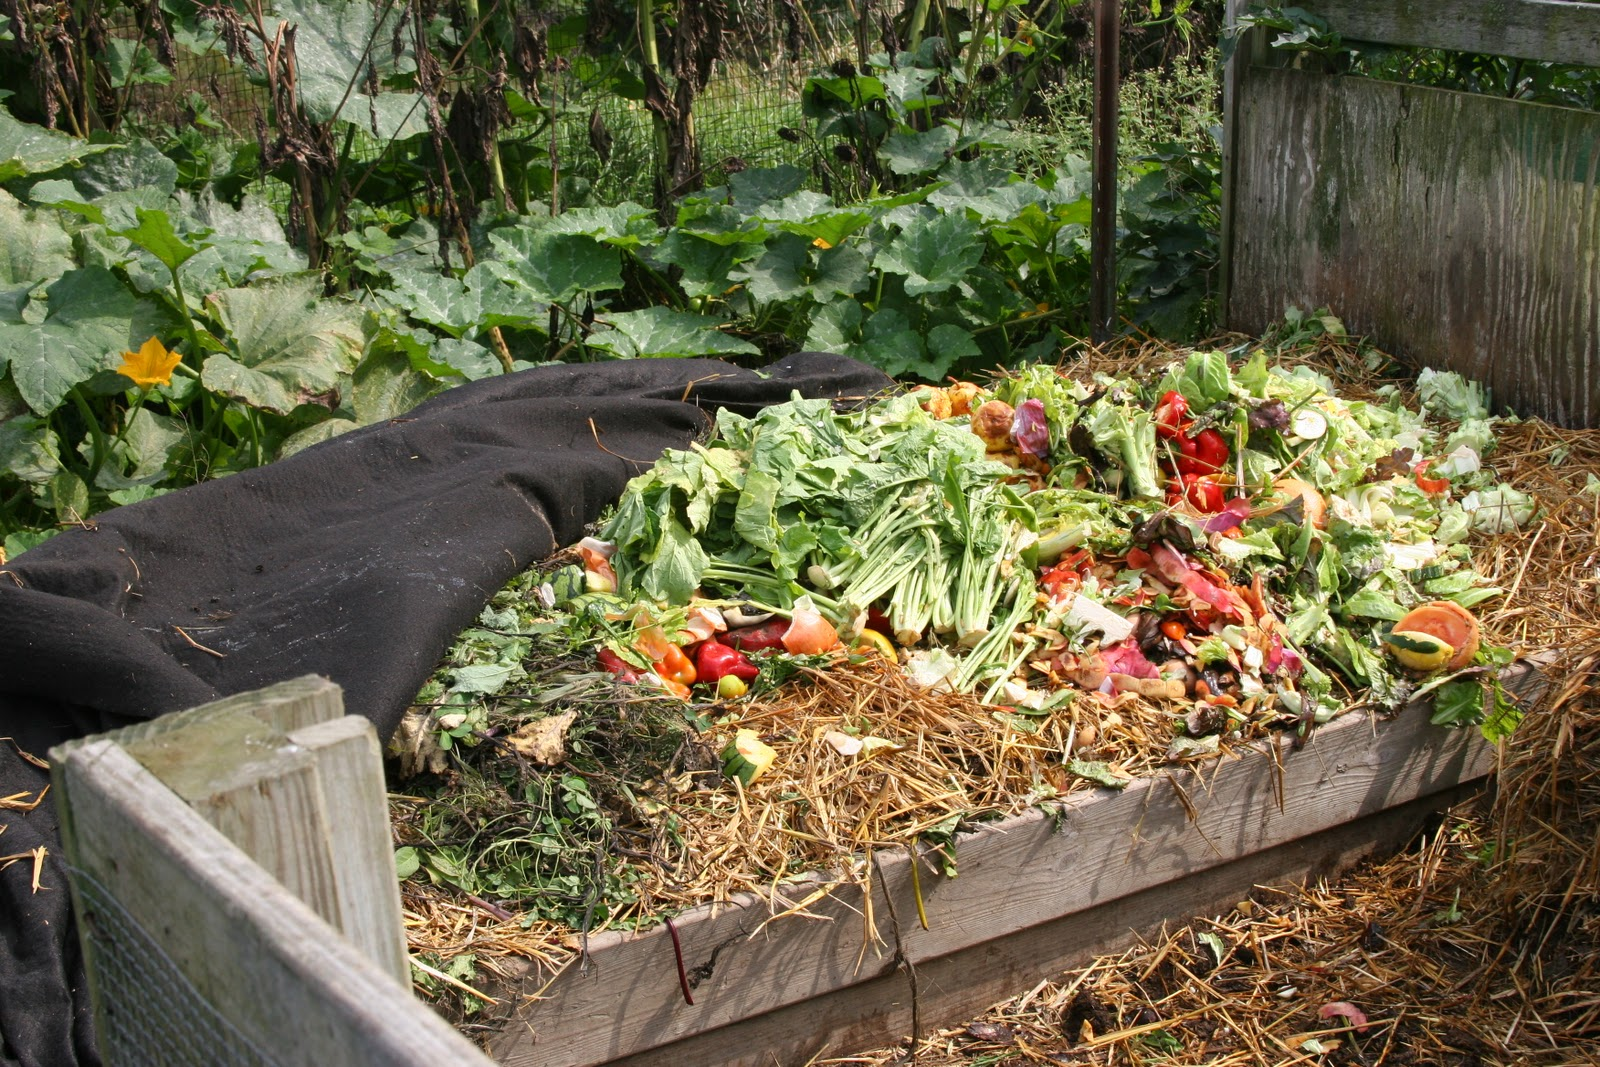 Karmê Chöling: Rebirth In The Garden: Composting At Karmê